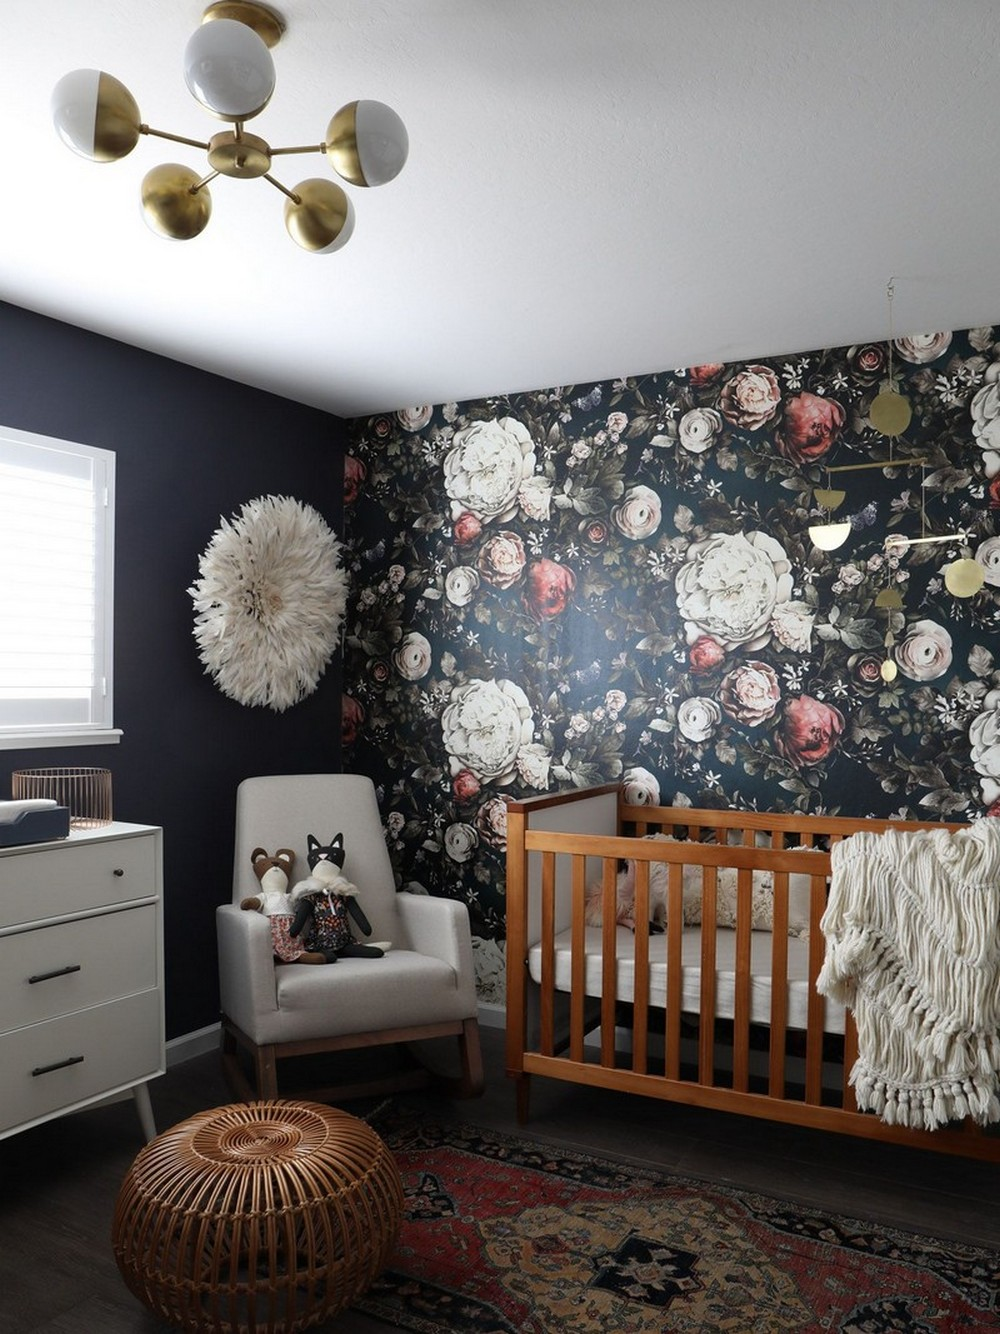 CovetED Shows The 2019 Trends For Spring Inspired Kid's Bedroom Decor Kid's Bedroom Decor CovetED Shows The 2019 Trends For Spring Inspired Kid's Bedroom Decor CovetED Shows The 2019 Trends For Spring Inspired Kids Bedroom Decor 2